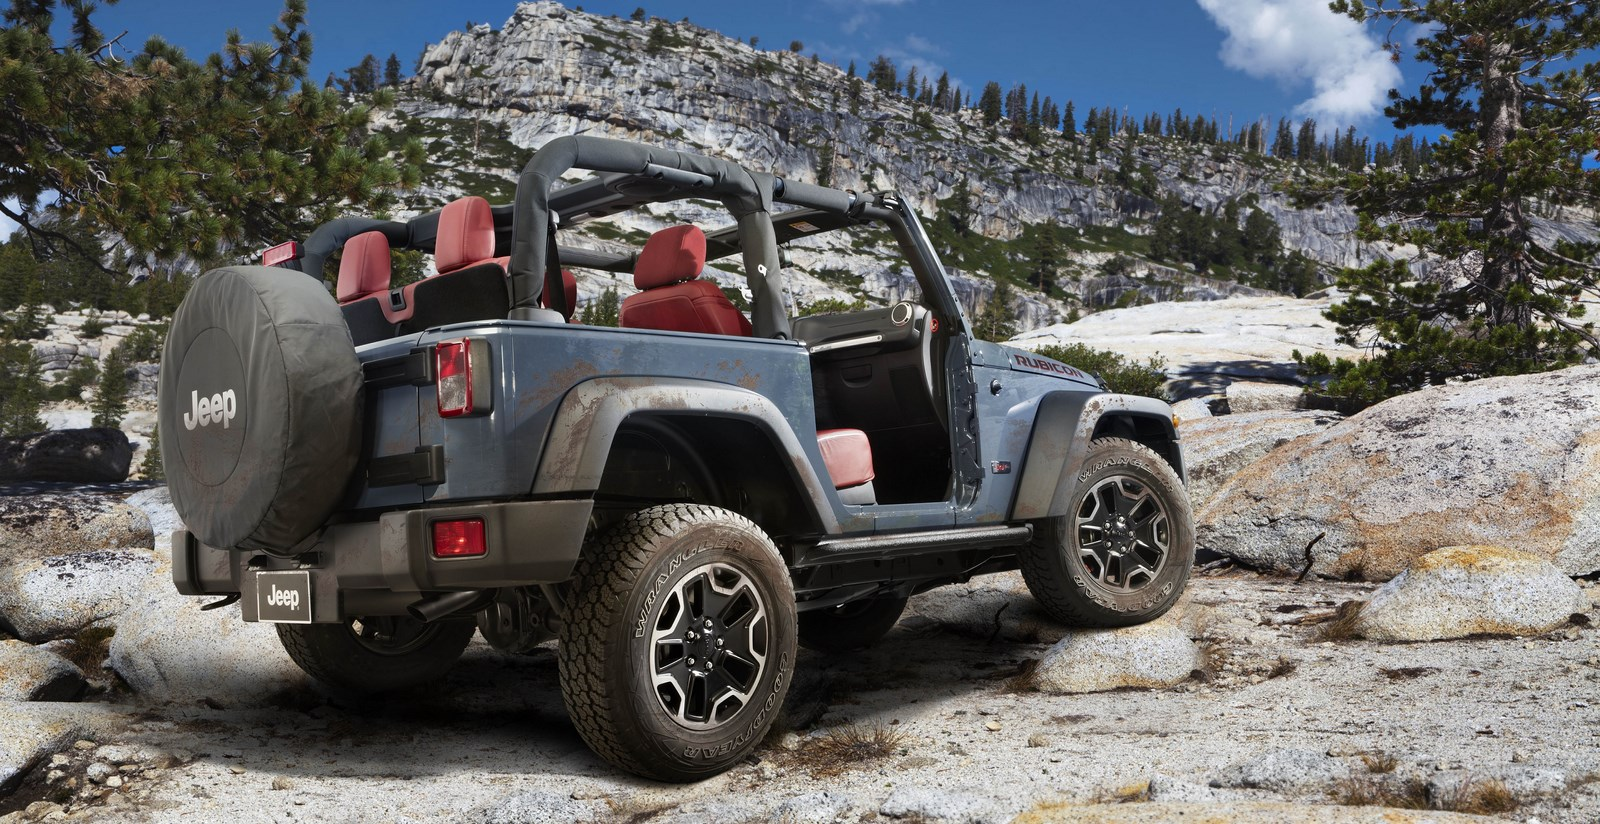 2014 Jeep Wrangler Interior Features Including Deluxe ...